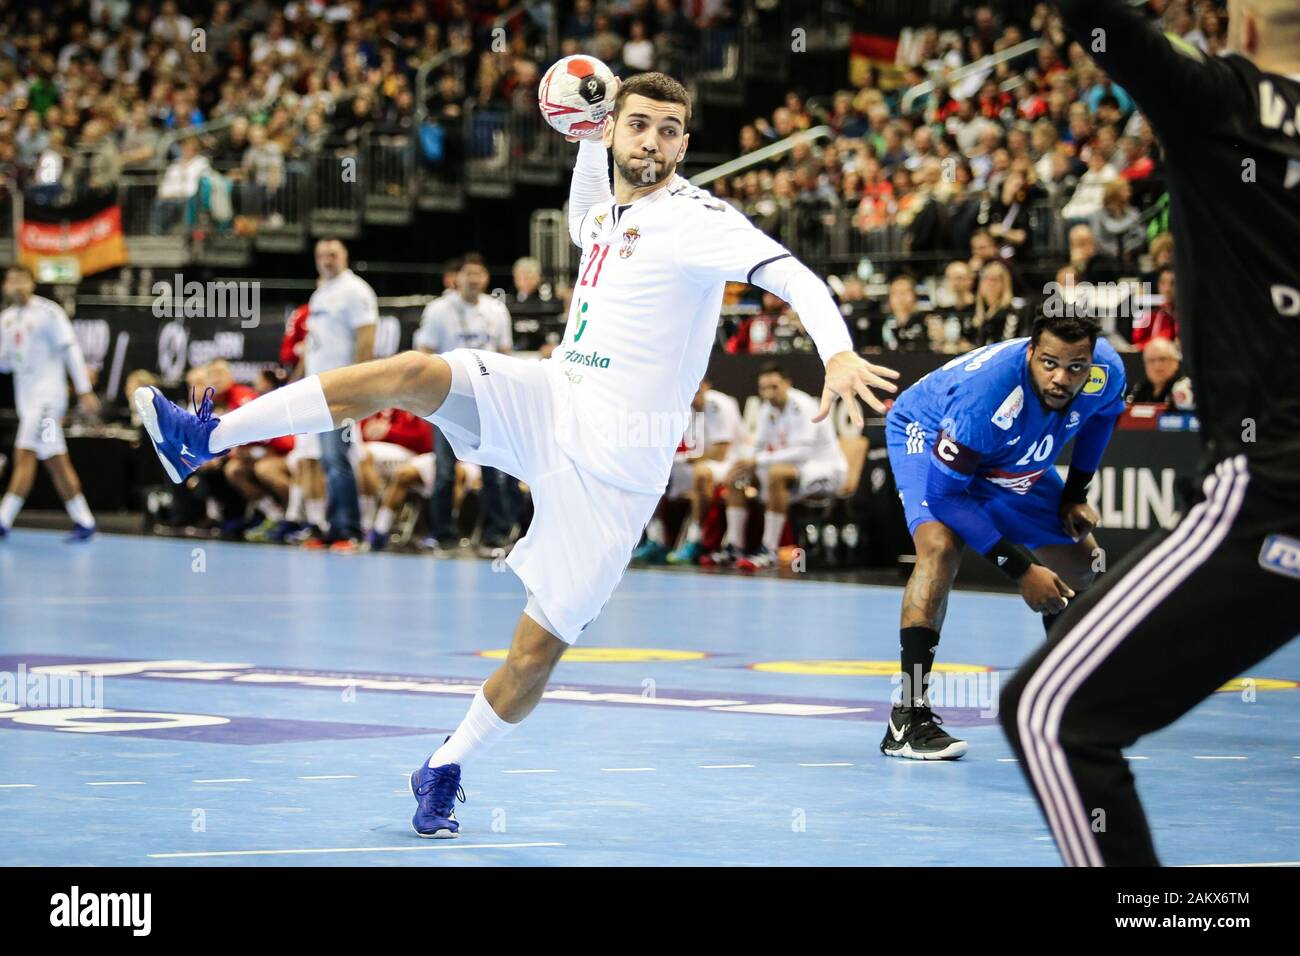 Handball World Cup High Resolution Stock Photography And Images Alamy